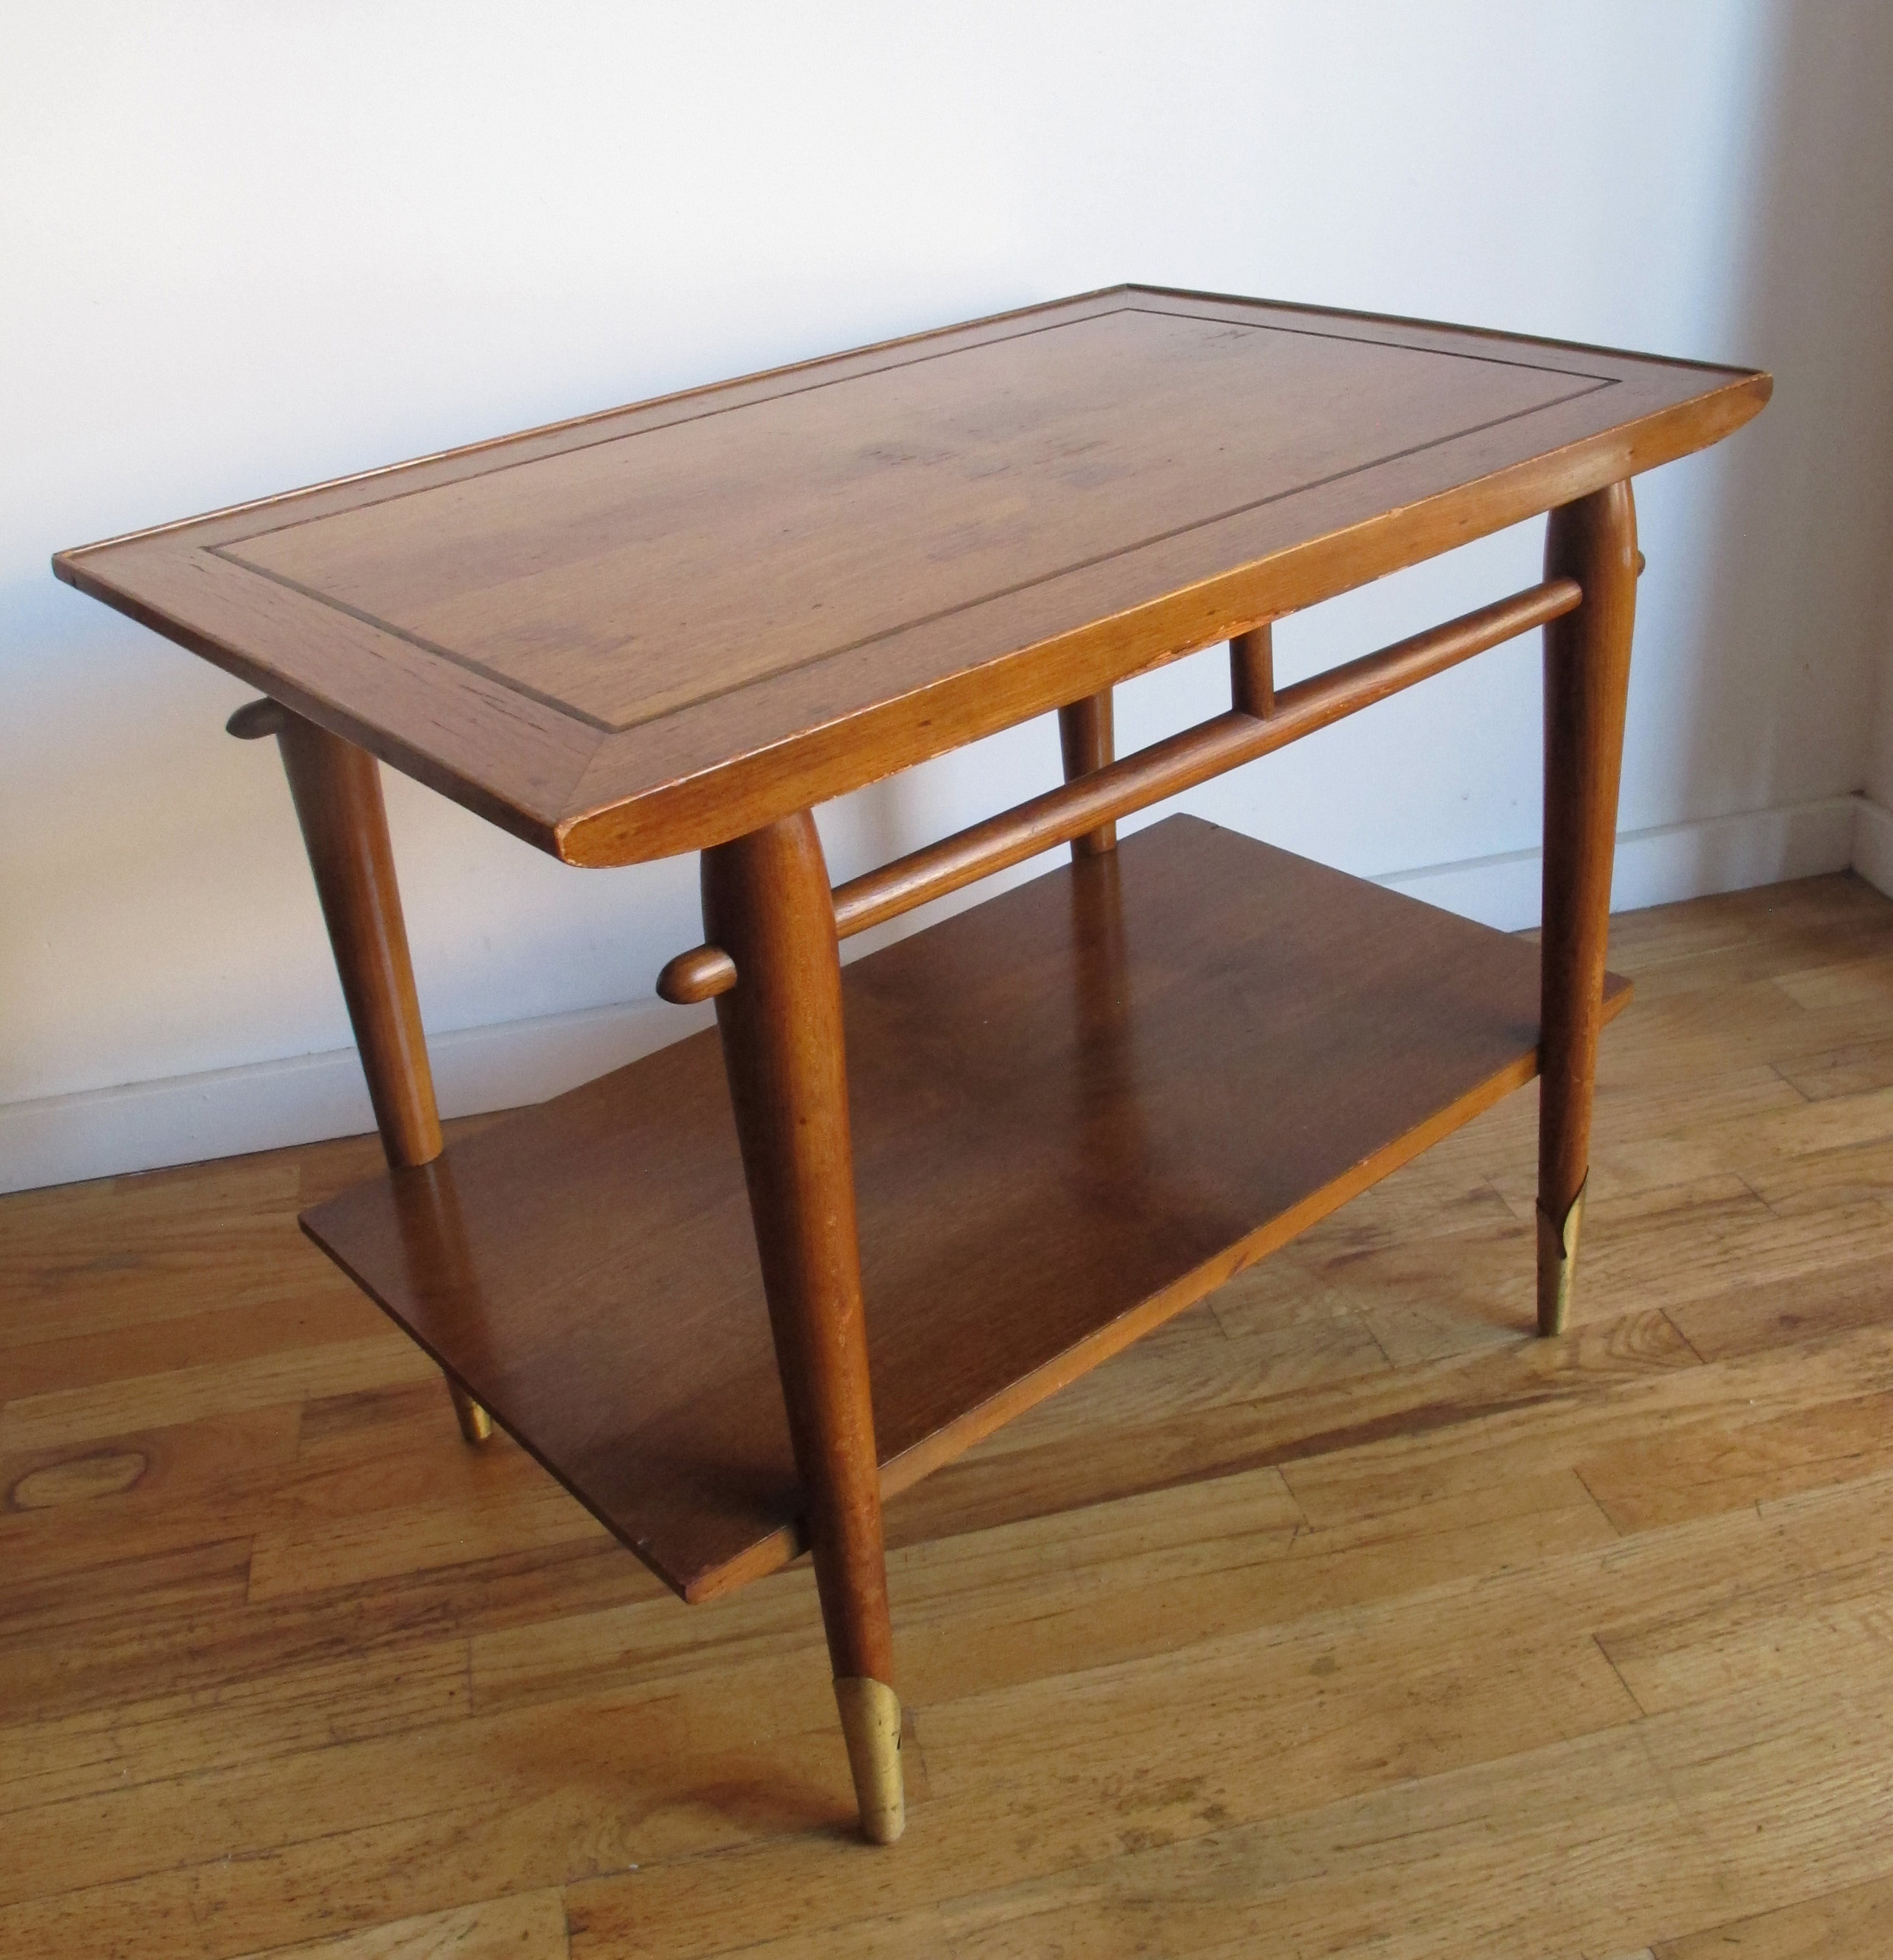 MID CENTURY TWO-TIER END TABLE WITH BRASS FEET BY LANE